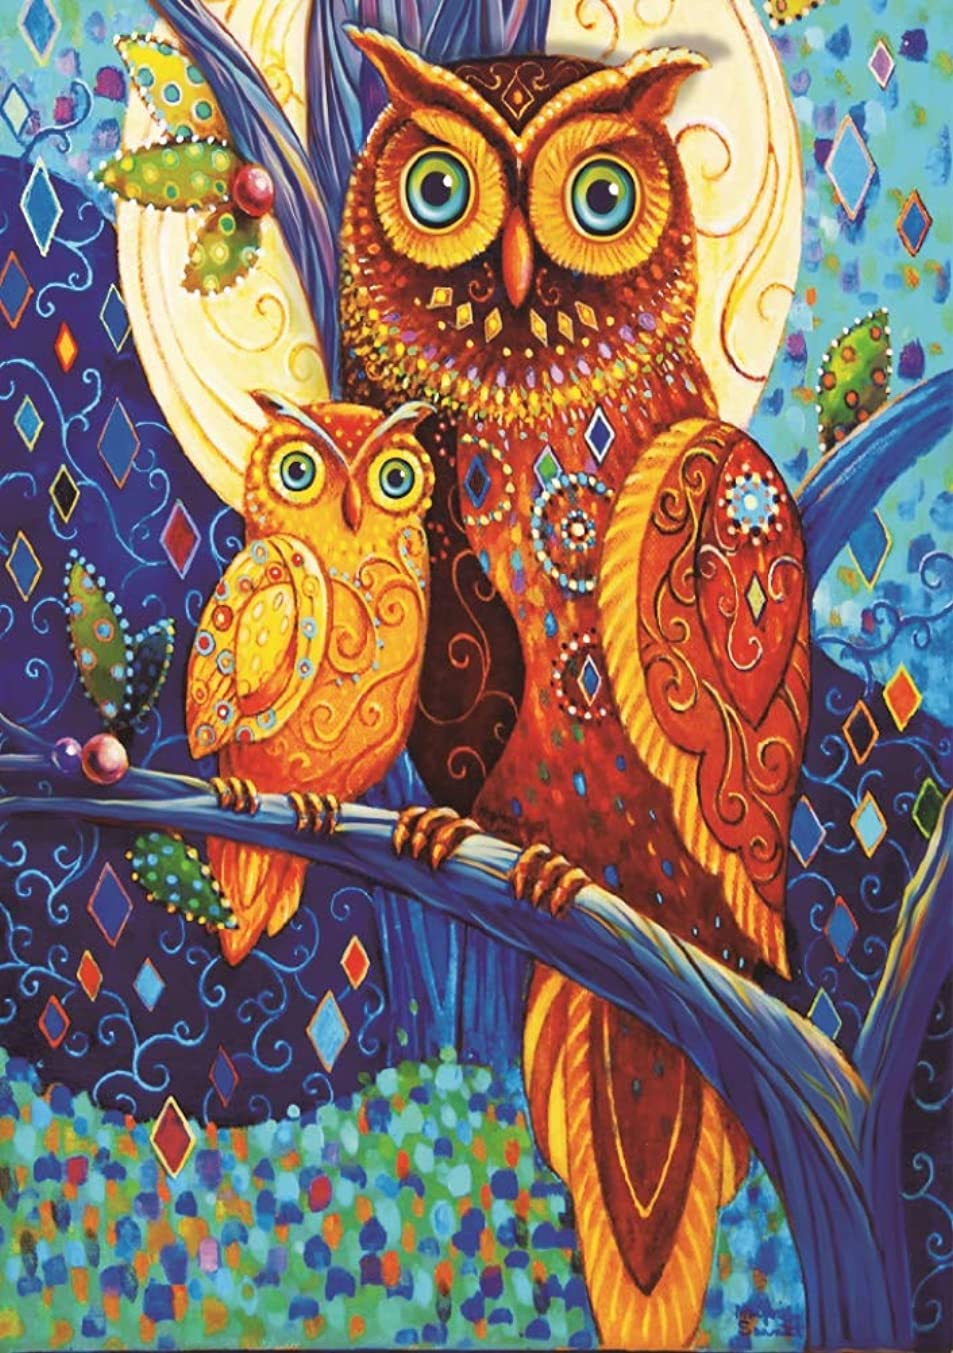 DIY 5D Diamond Painting Kit for Adults Children, NYEBS 5D DIY Diamond Painting Special Shaped Drill Animal The Owl Mother and Son Rhinestone Embroidery for Wall Decoration 12X16 inches